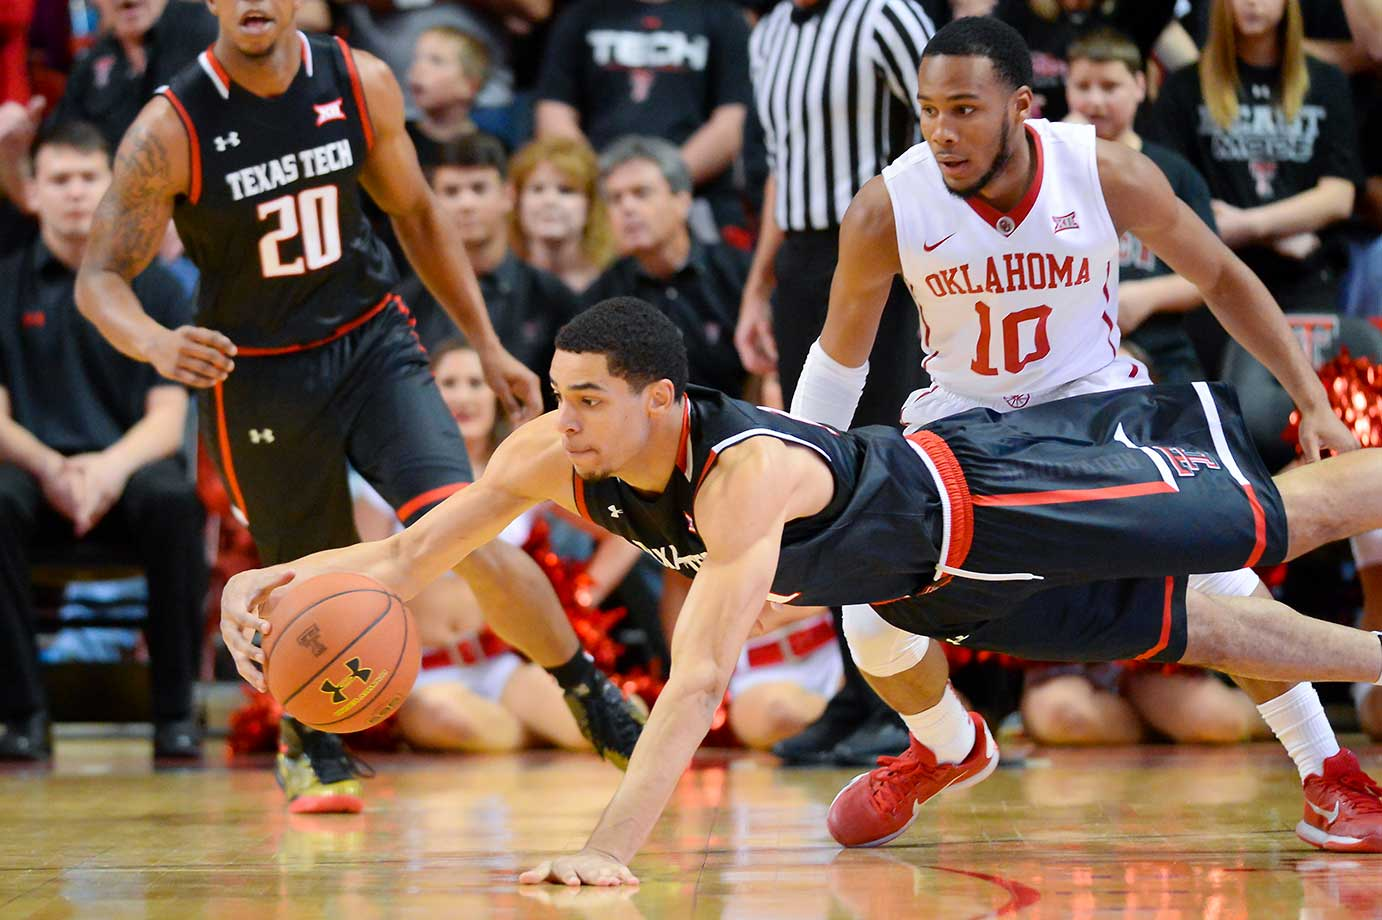 Zach Smith of Texas Tech dives for a loose ball during an upset win over No. 3 Oklahoma.